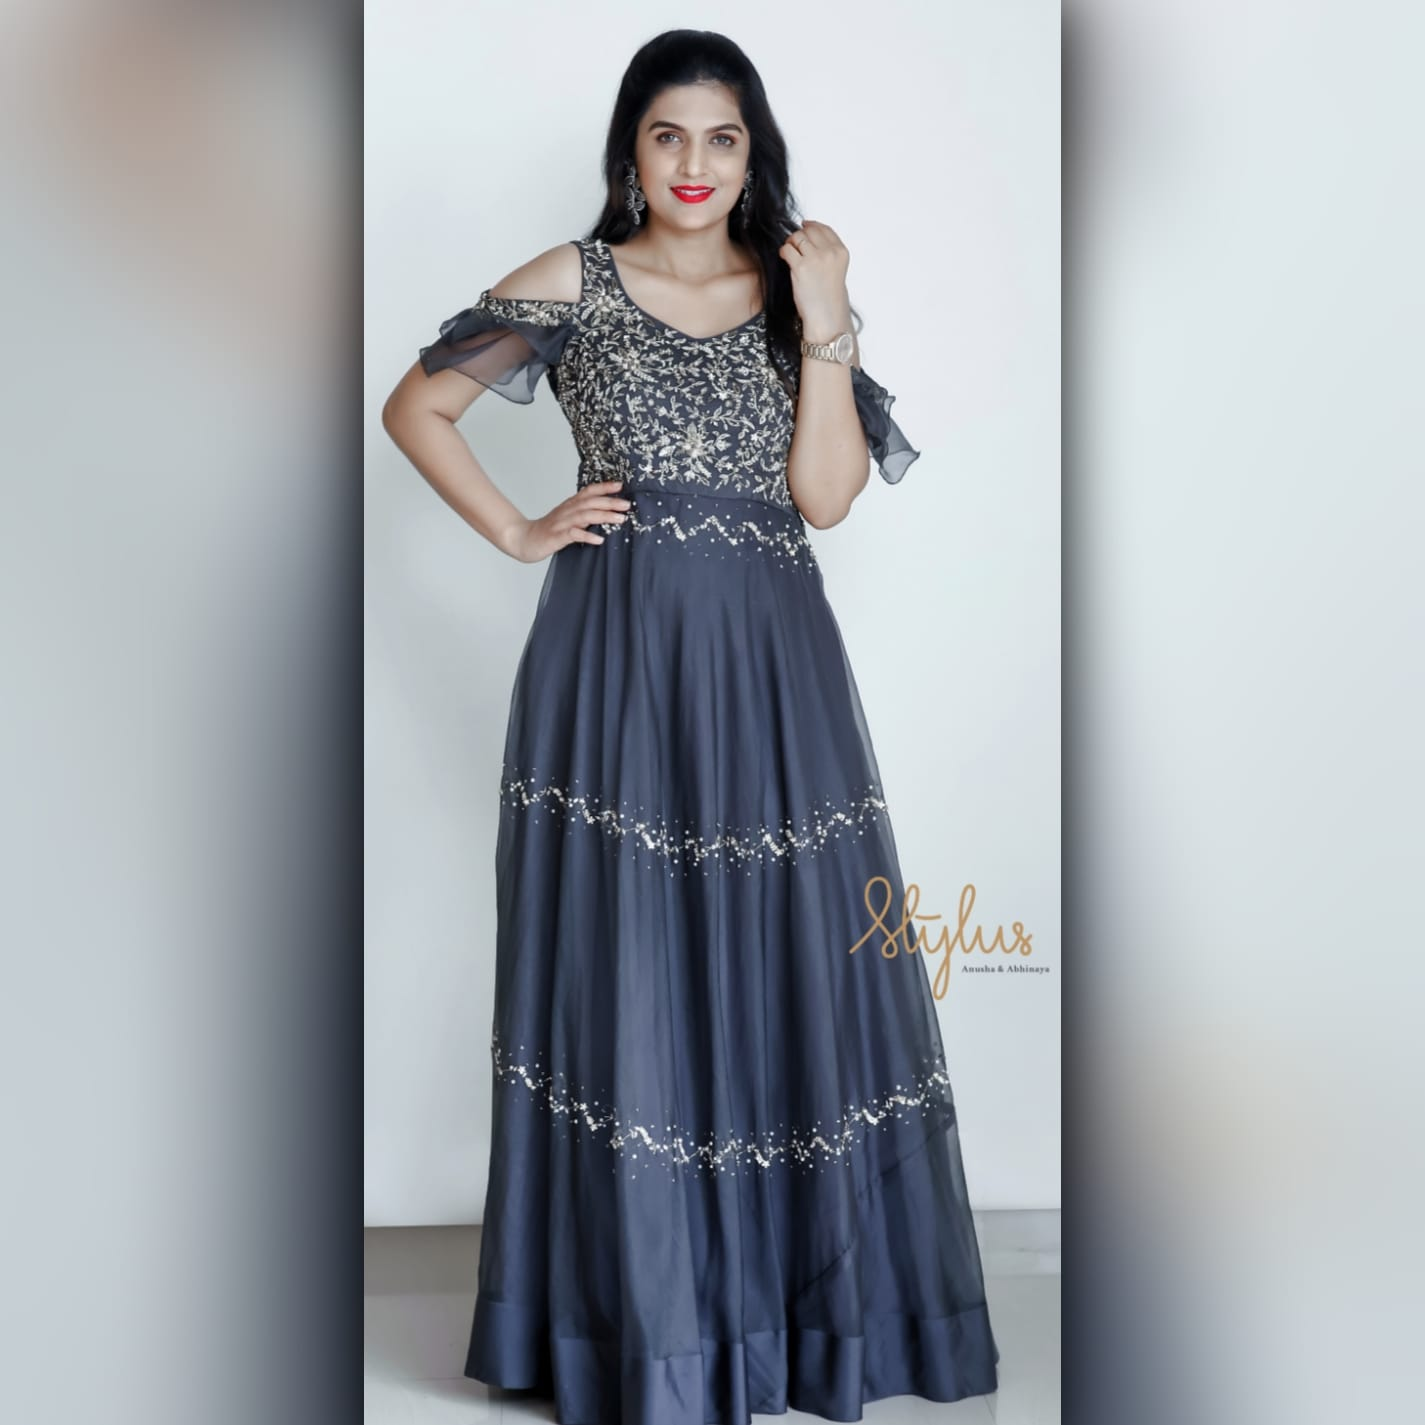 Grey is the queen of colors because she makes everyone else look good. Grey organza frock with layered embroidery. Dress up in this outfit to be the delight of the party.   latest indo western dresses   indo western online   latest indo western dresses 2020   2020-11-24